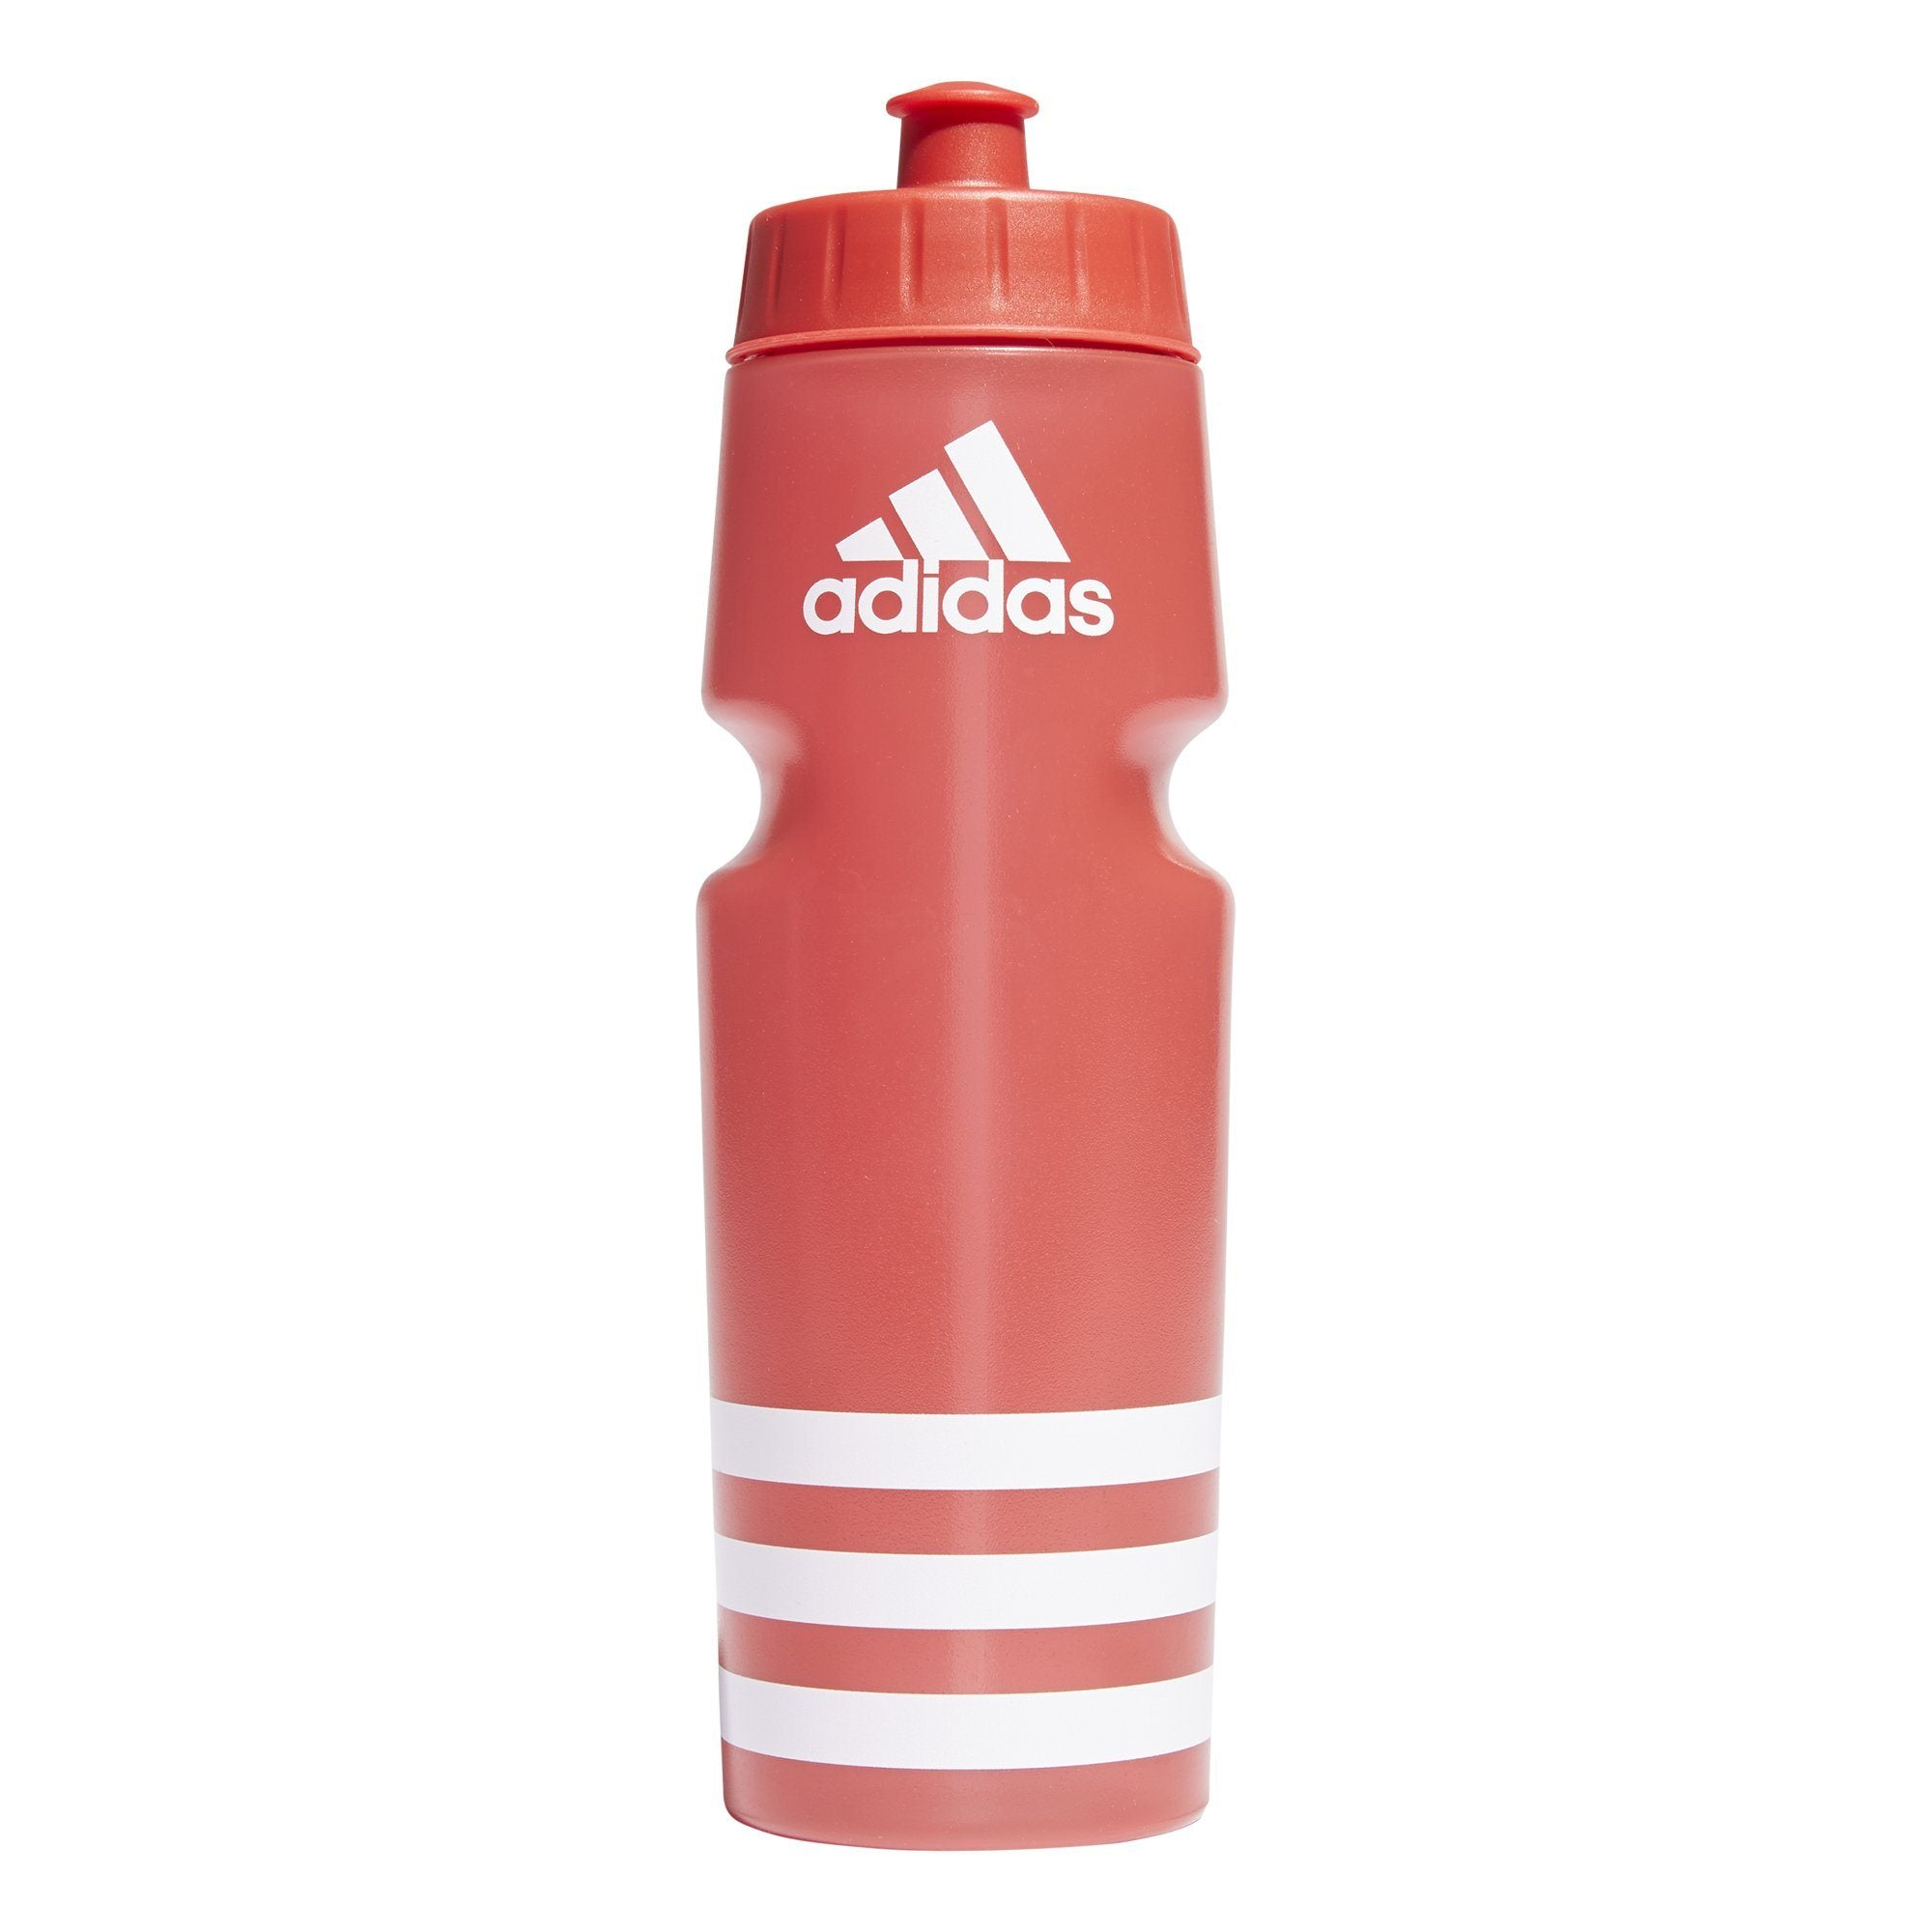 Adidas Performance 750ml Water Bottle - Scarlet/White SP - Accessories Adidas